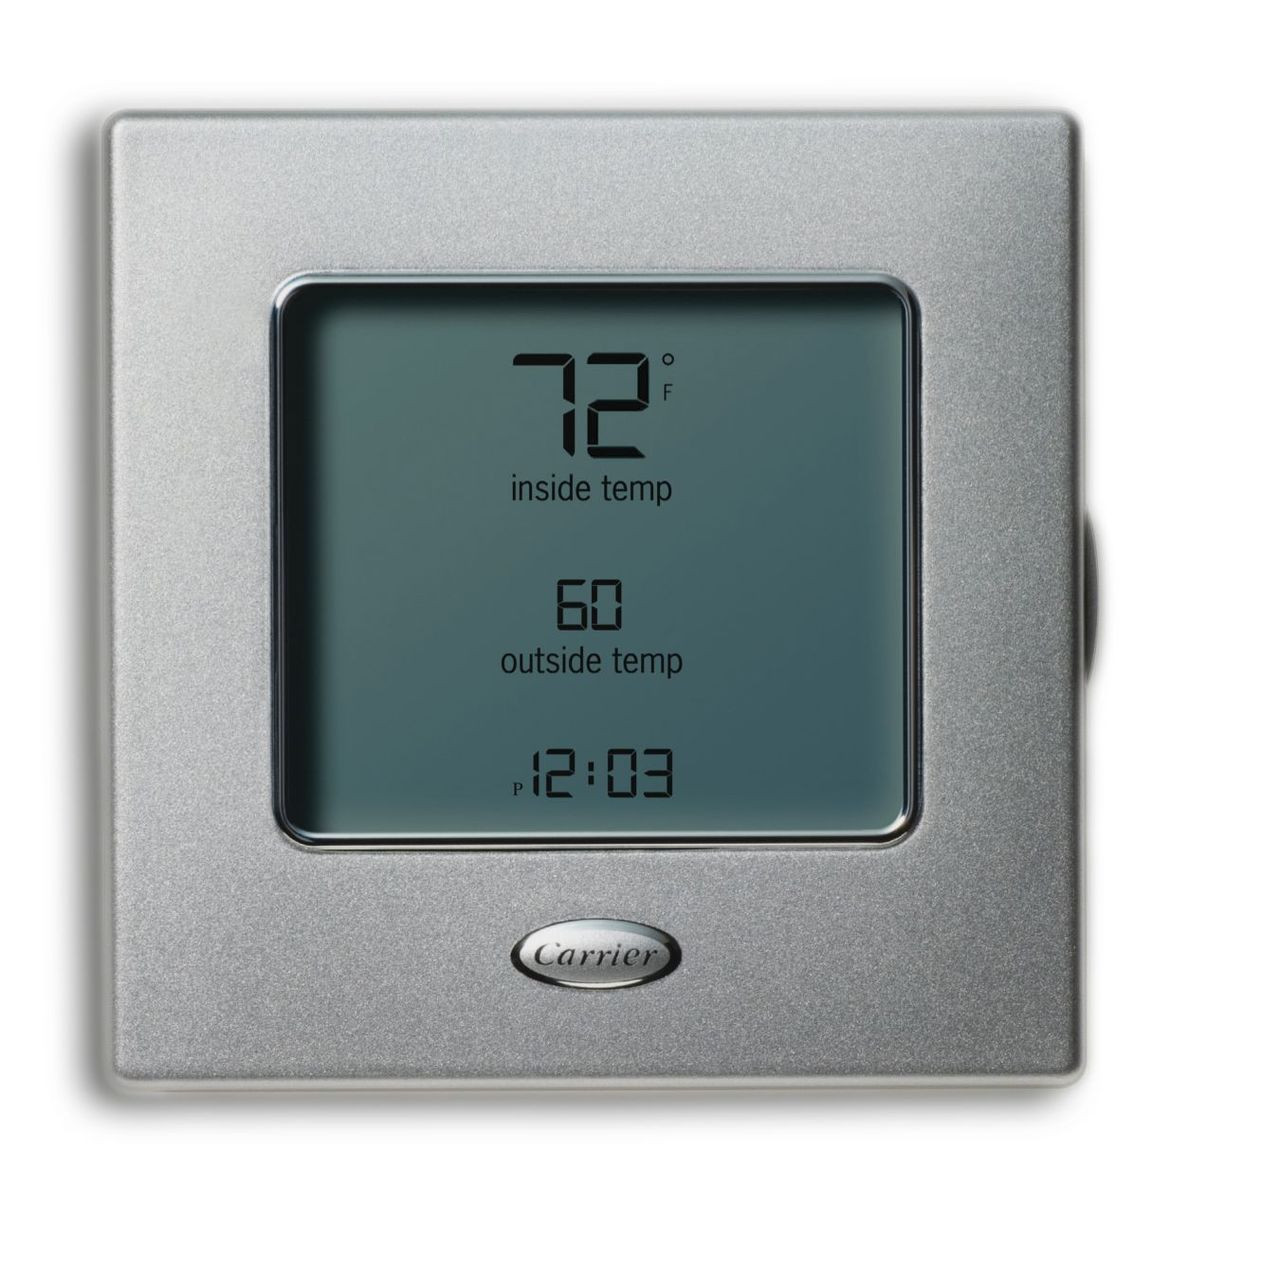 TP-NHP01-A - Non-Programmable Heat Pump Thermostat